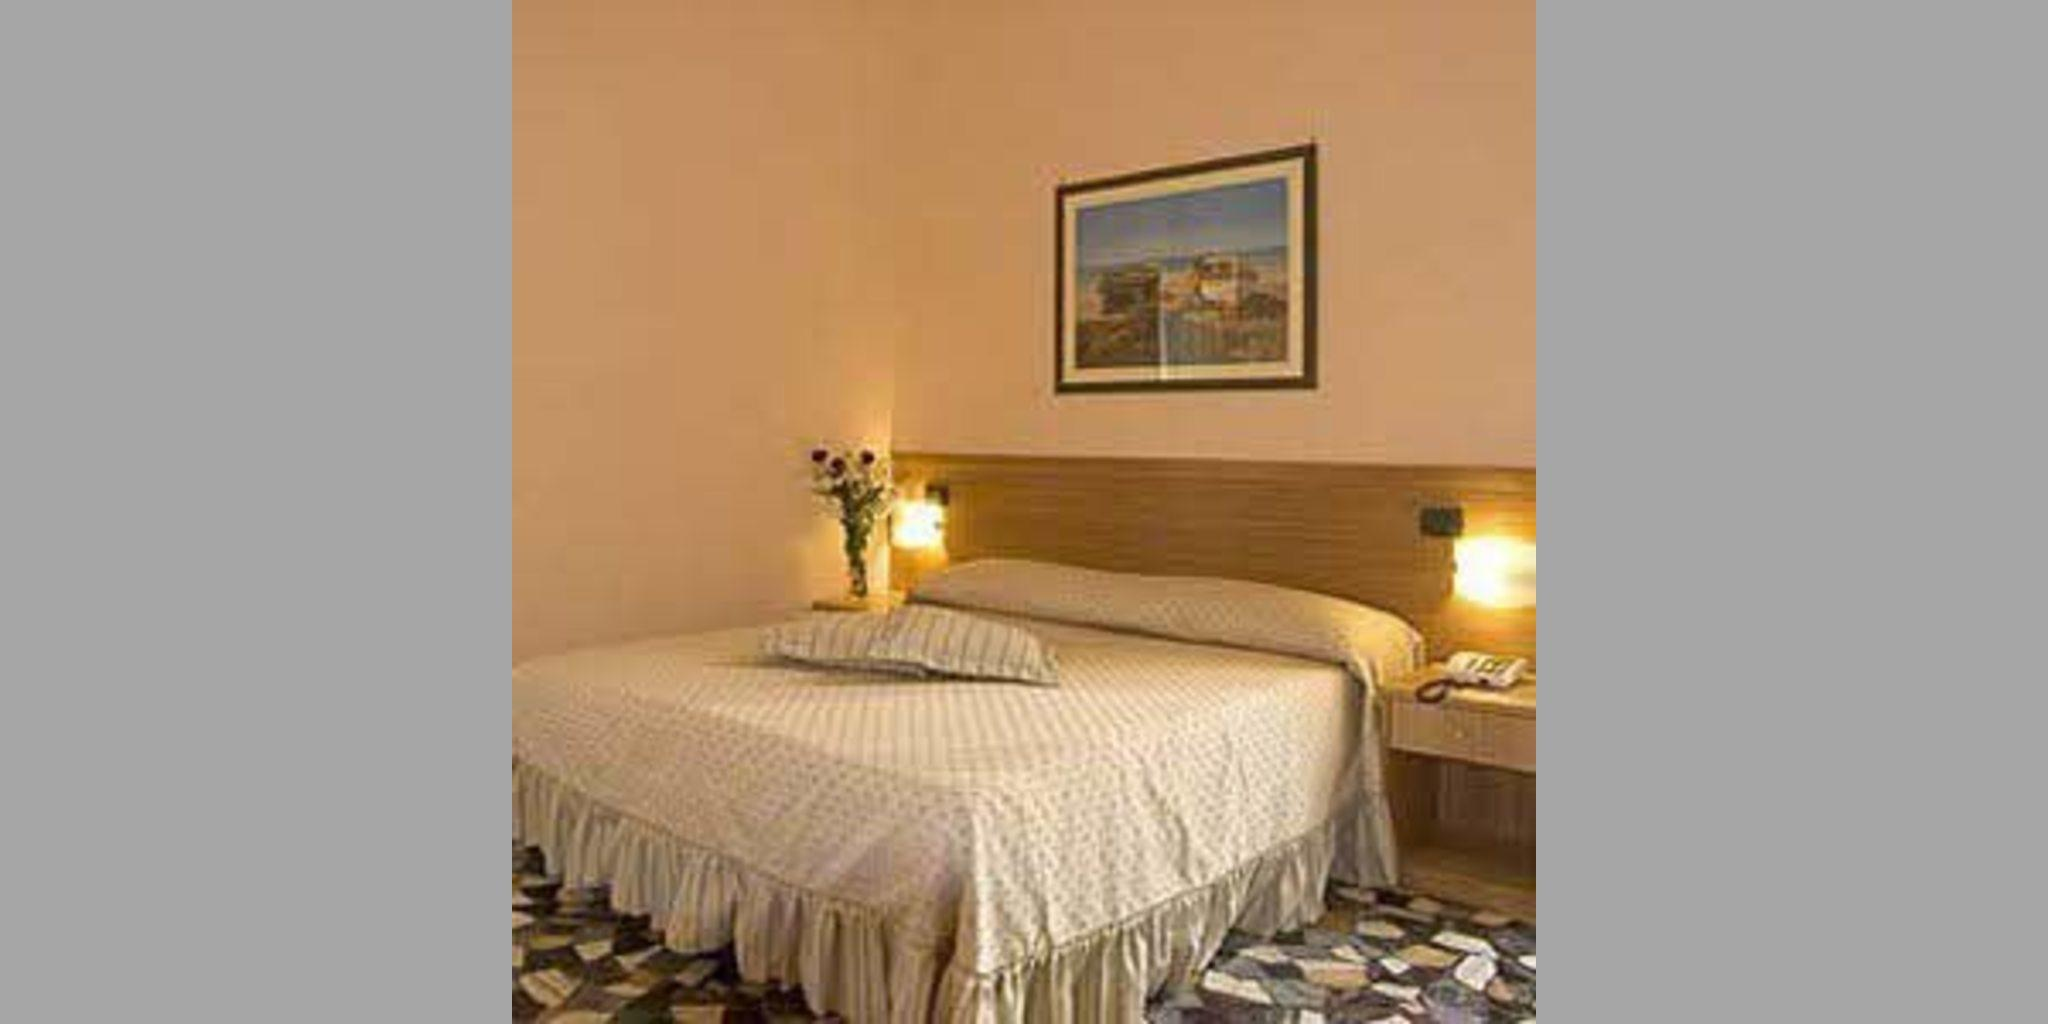 Bed & Breakfast Lecce - Anfiteatro